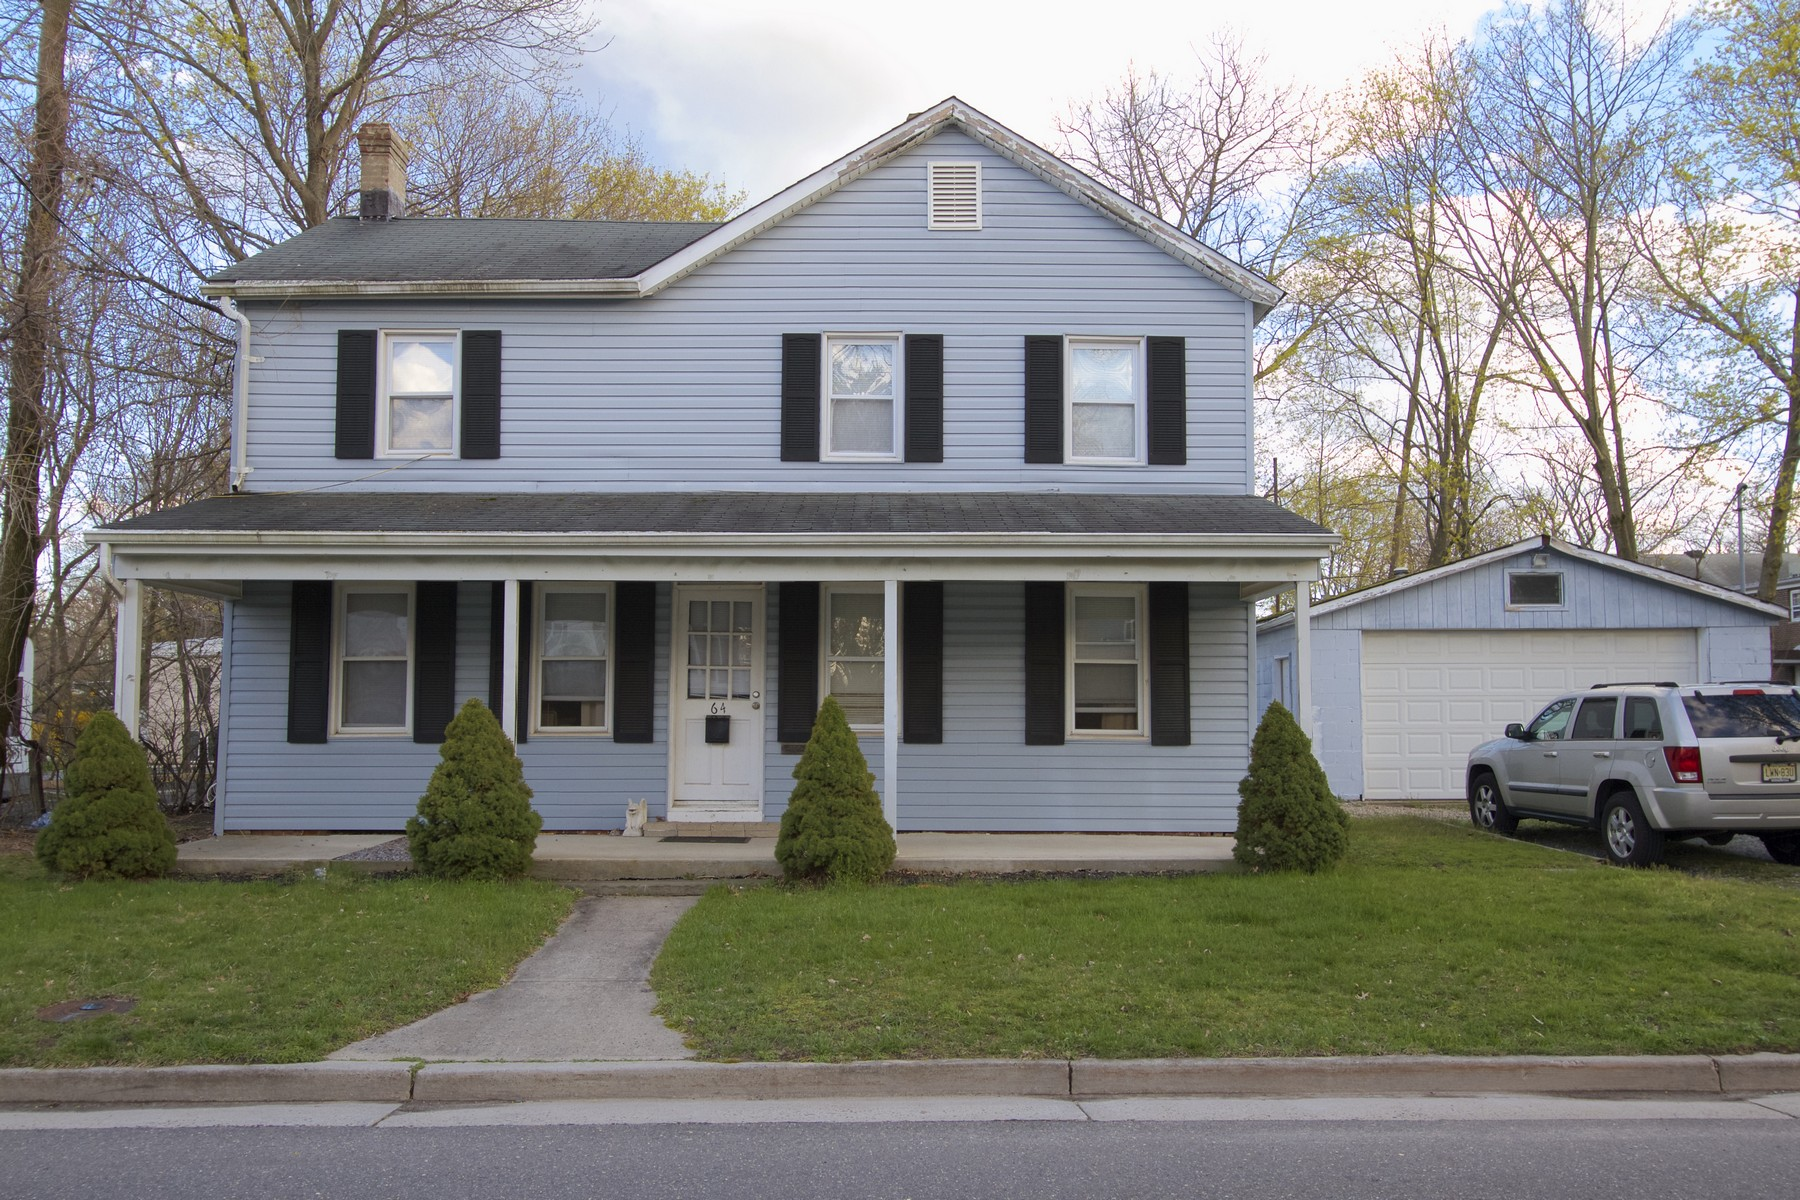 Single Family Home for Sale at Eatontown 64 Throckmorton Avenue Eatontown, New Jersey, 07724 United States